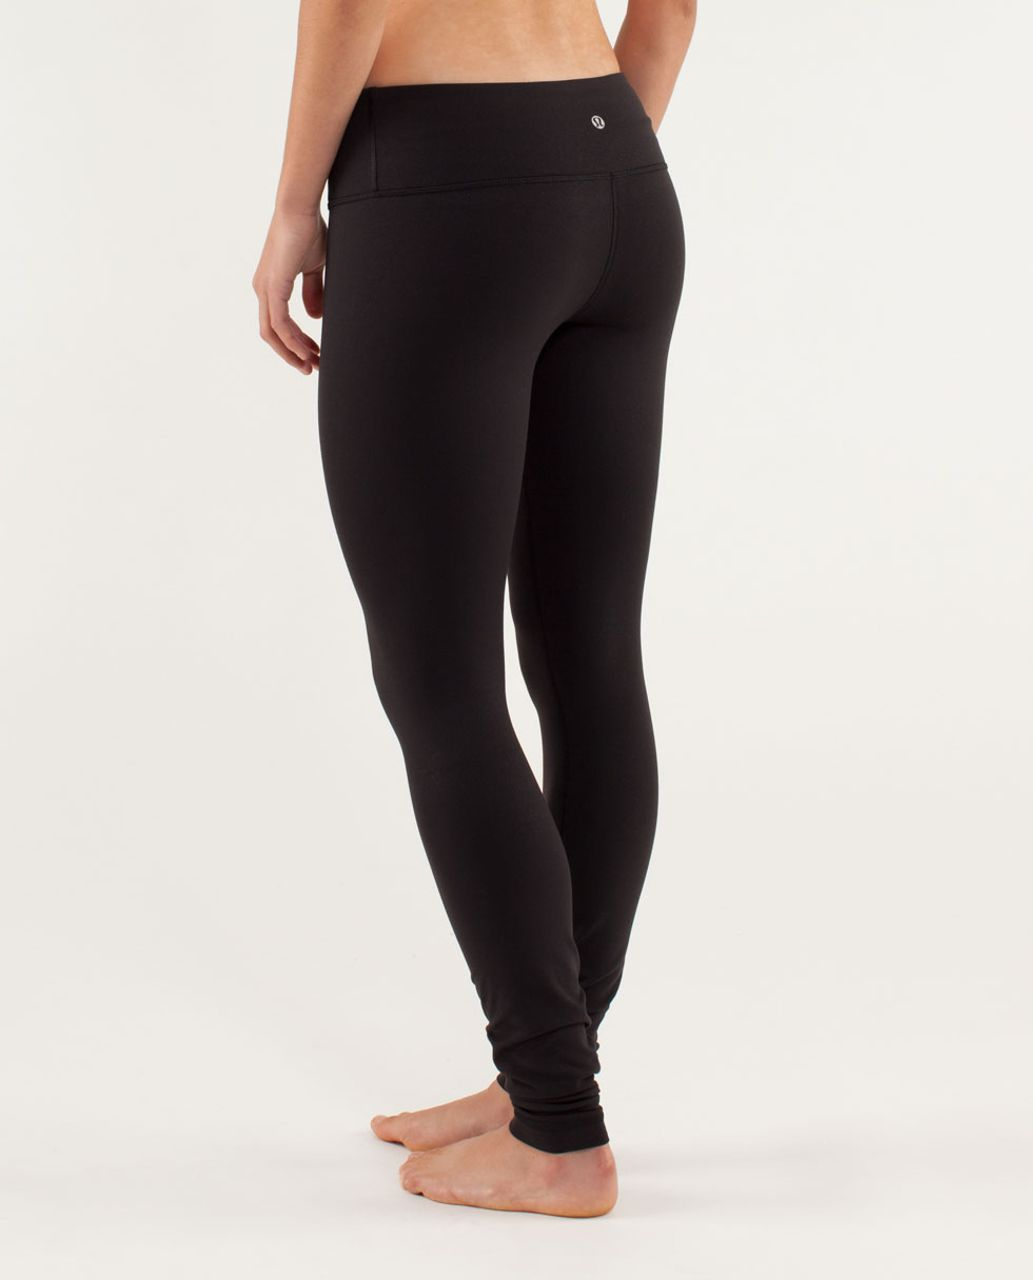 Lululemon Wunder Under Pant - Black / Wee Are From Space Black Coal